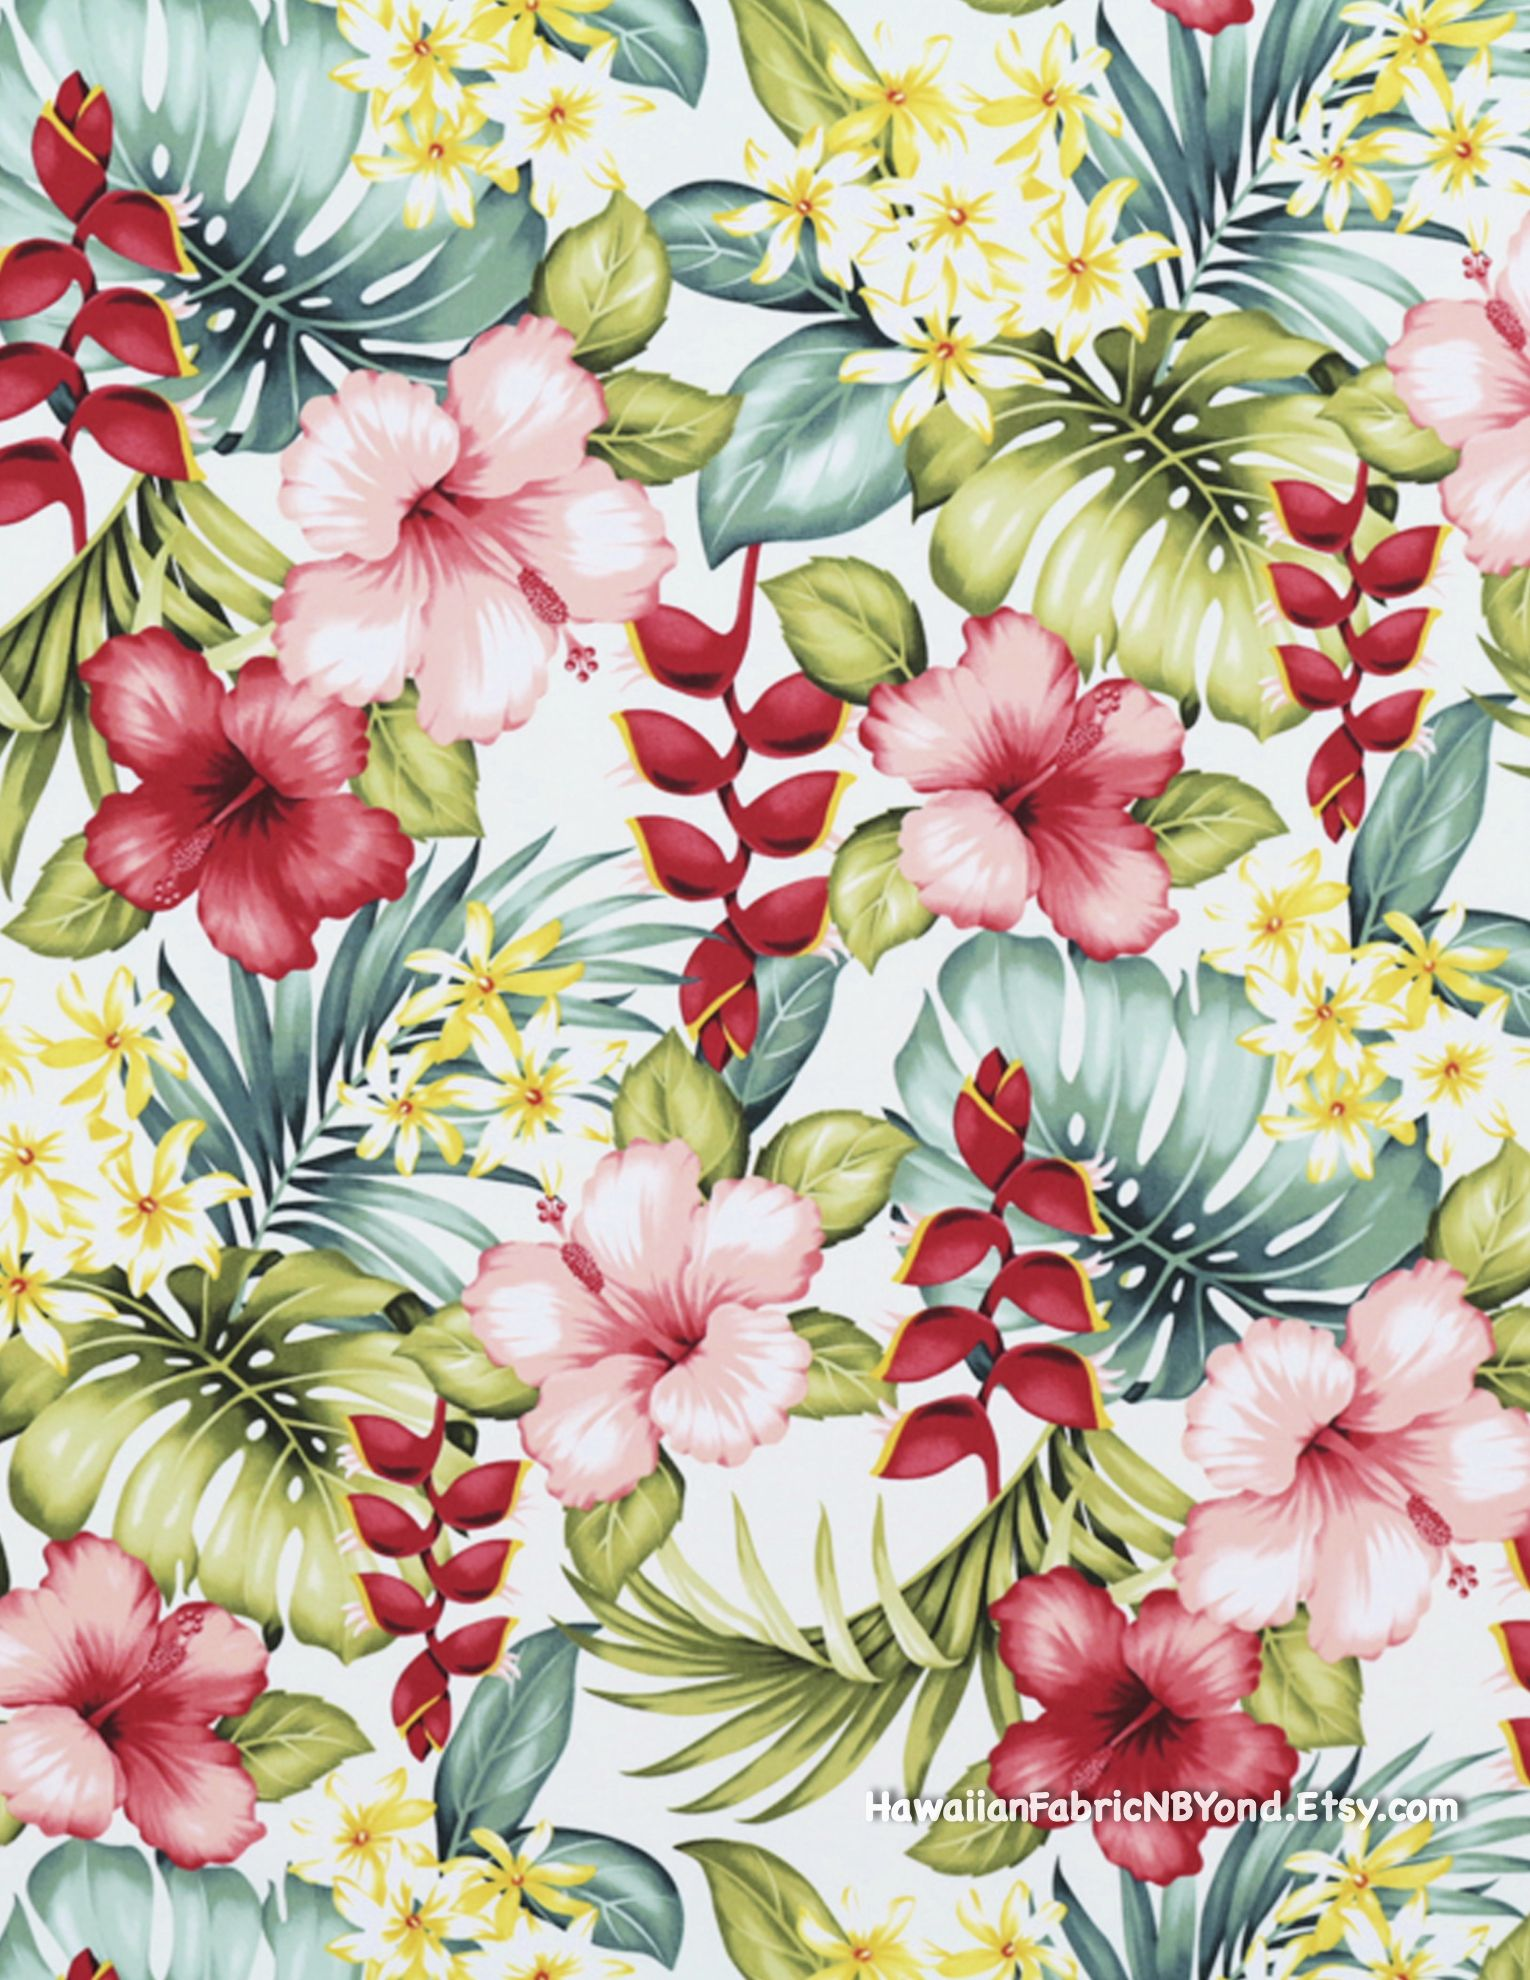 Tropical Floral Fabric Pink Hibiscus Heliconia Plumeria